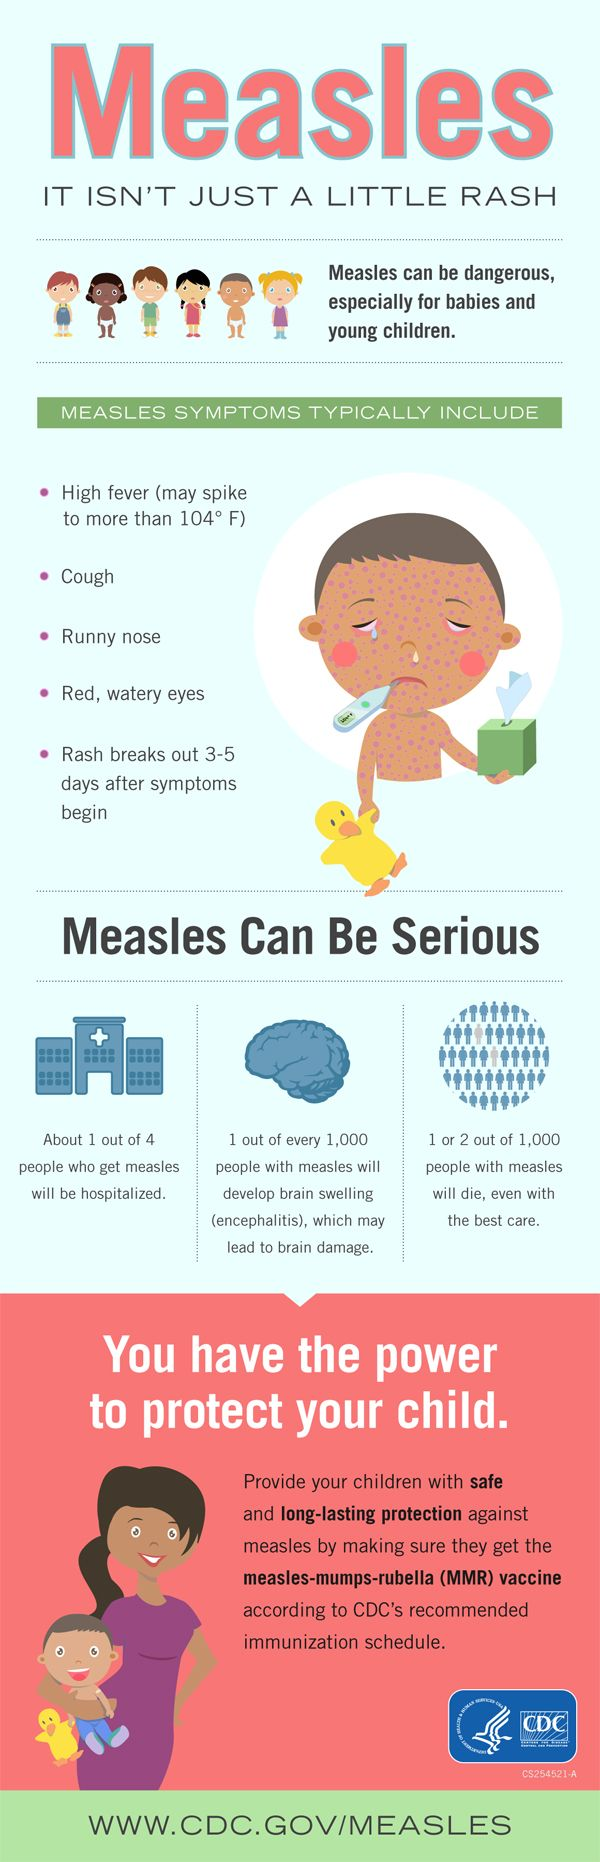 Infographic depicts #measles symptoms, including the serious health problems the disease can cause, but parents have the power to protect their children with MMR #vaccine.